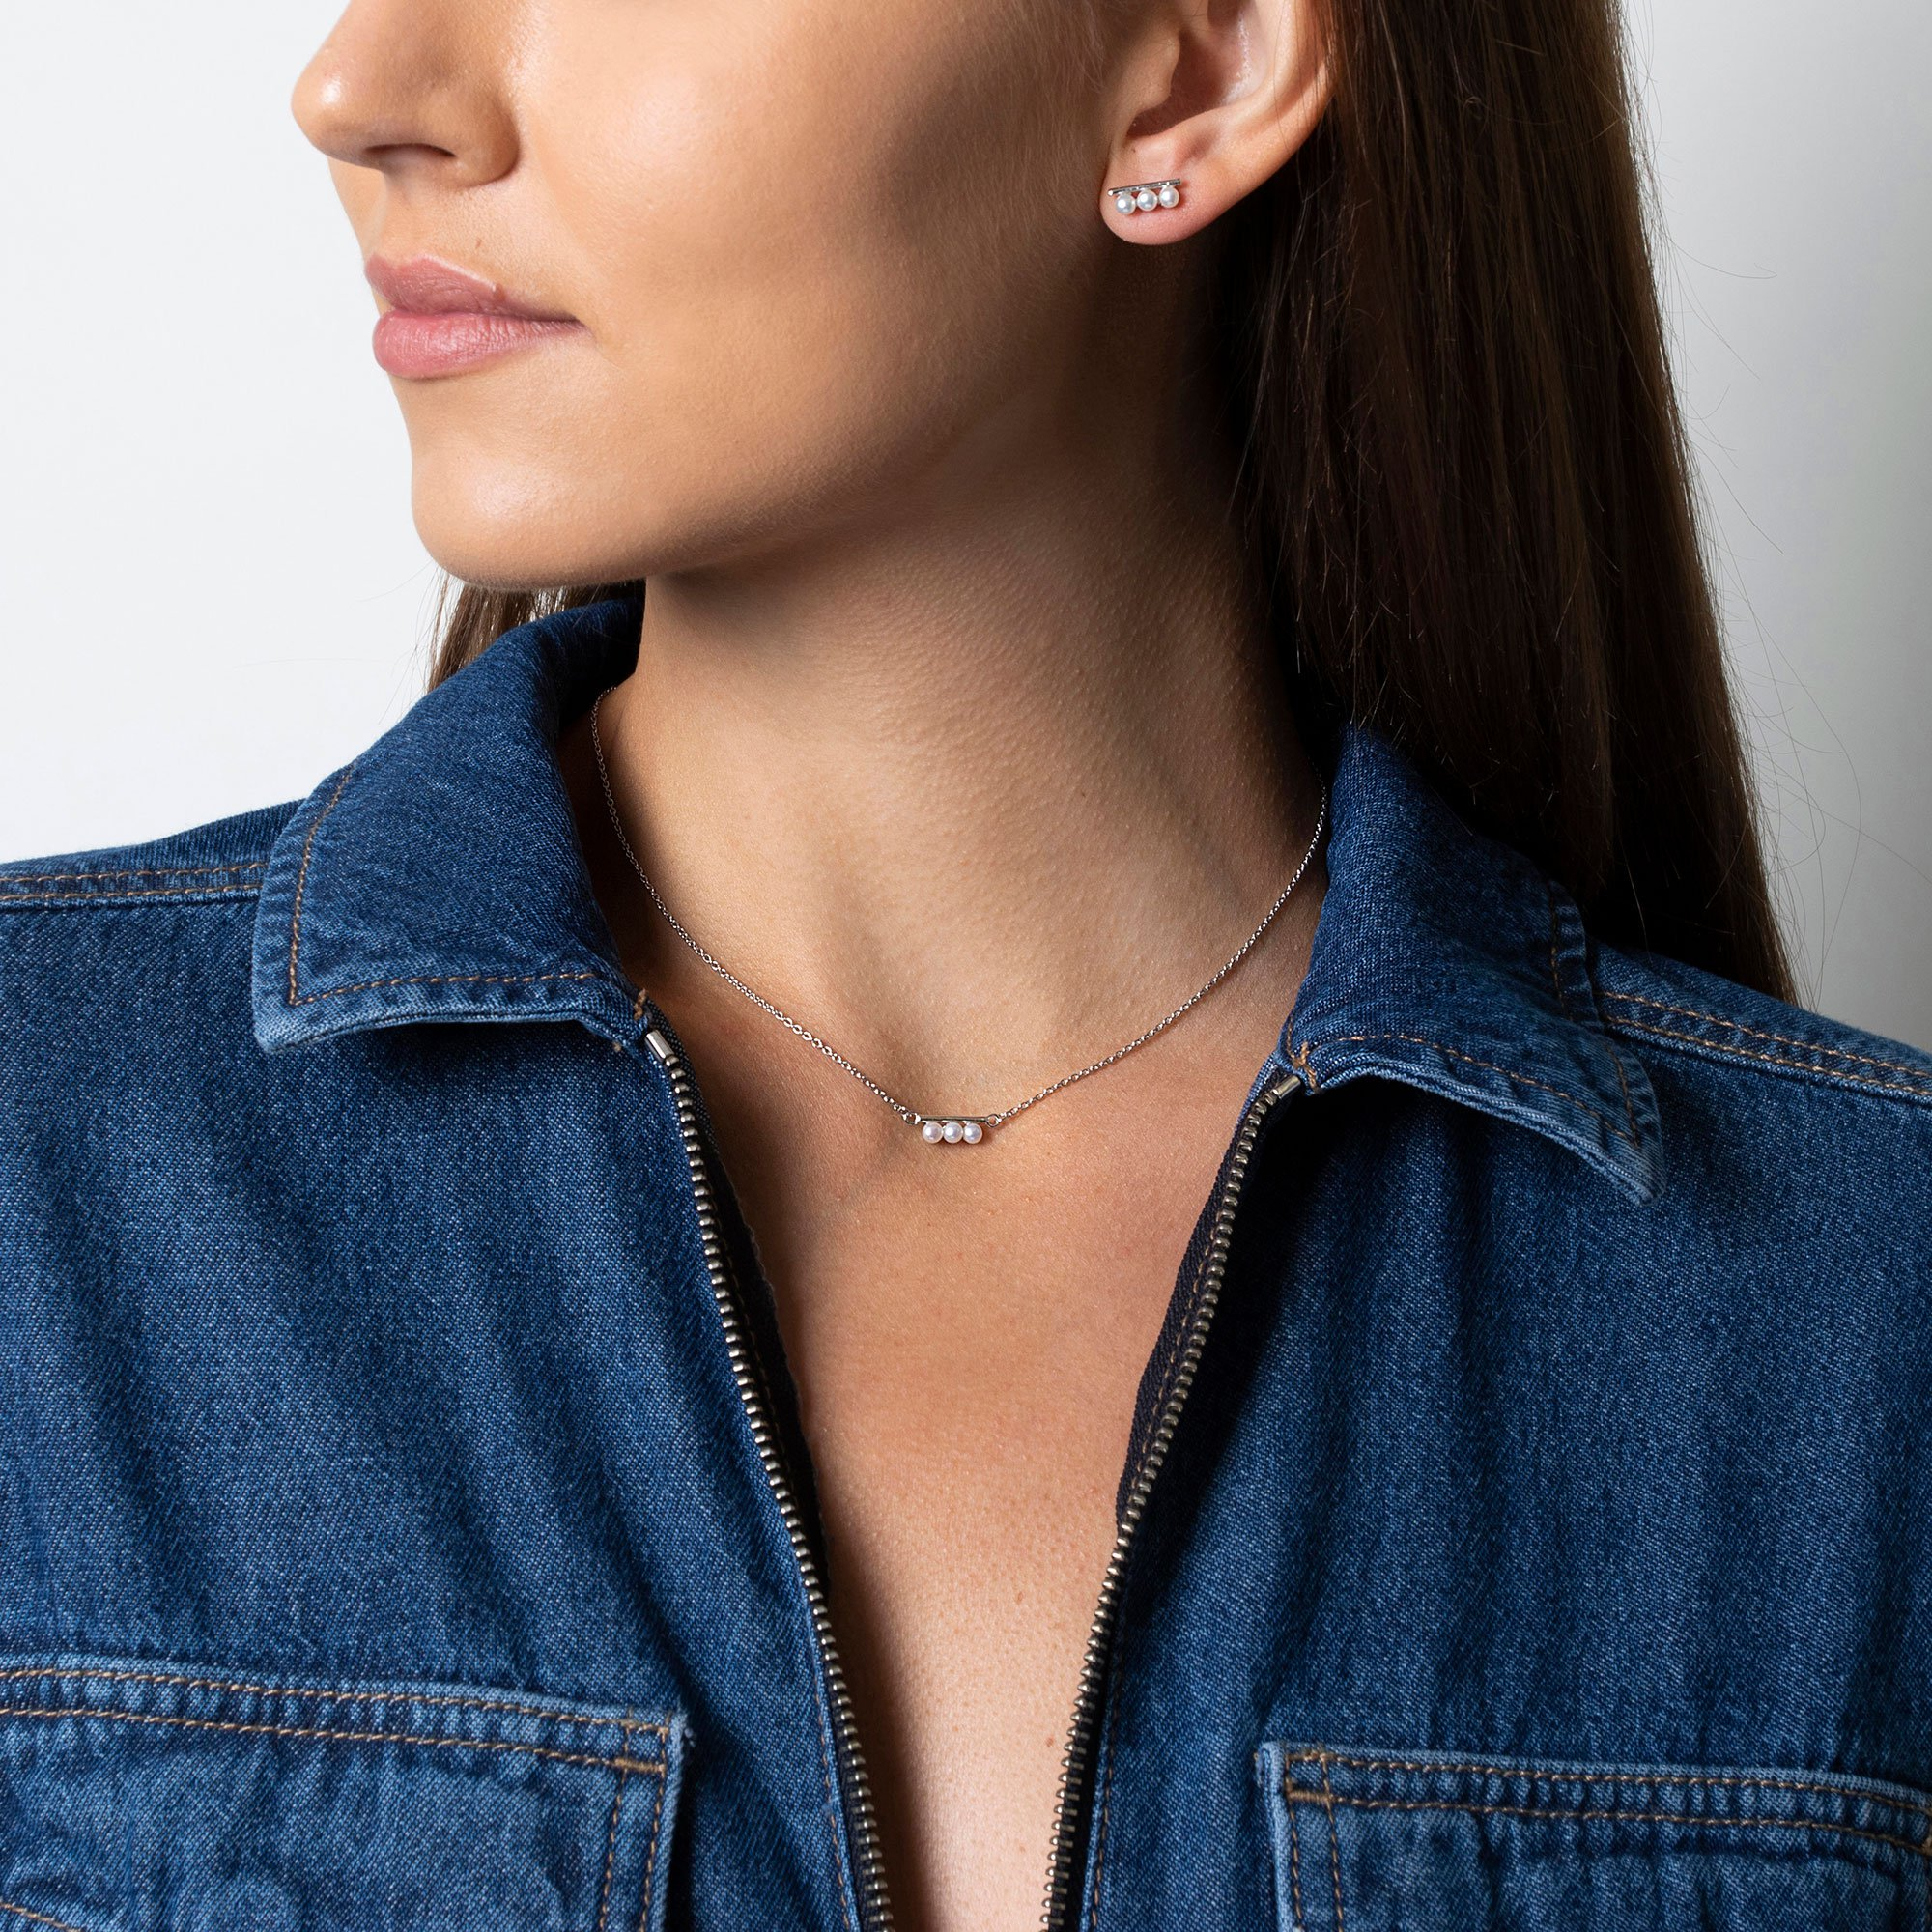 Lady wearing Claudia Bradby earrings and necklace